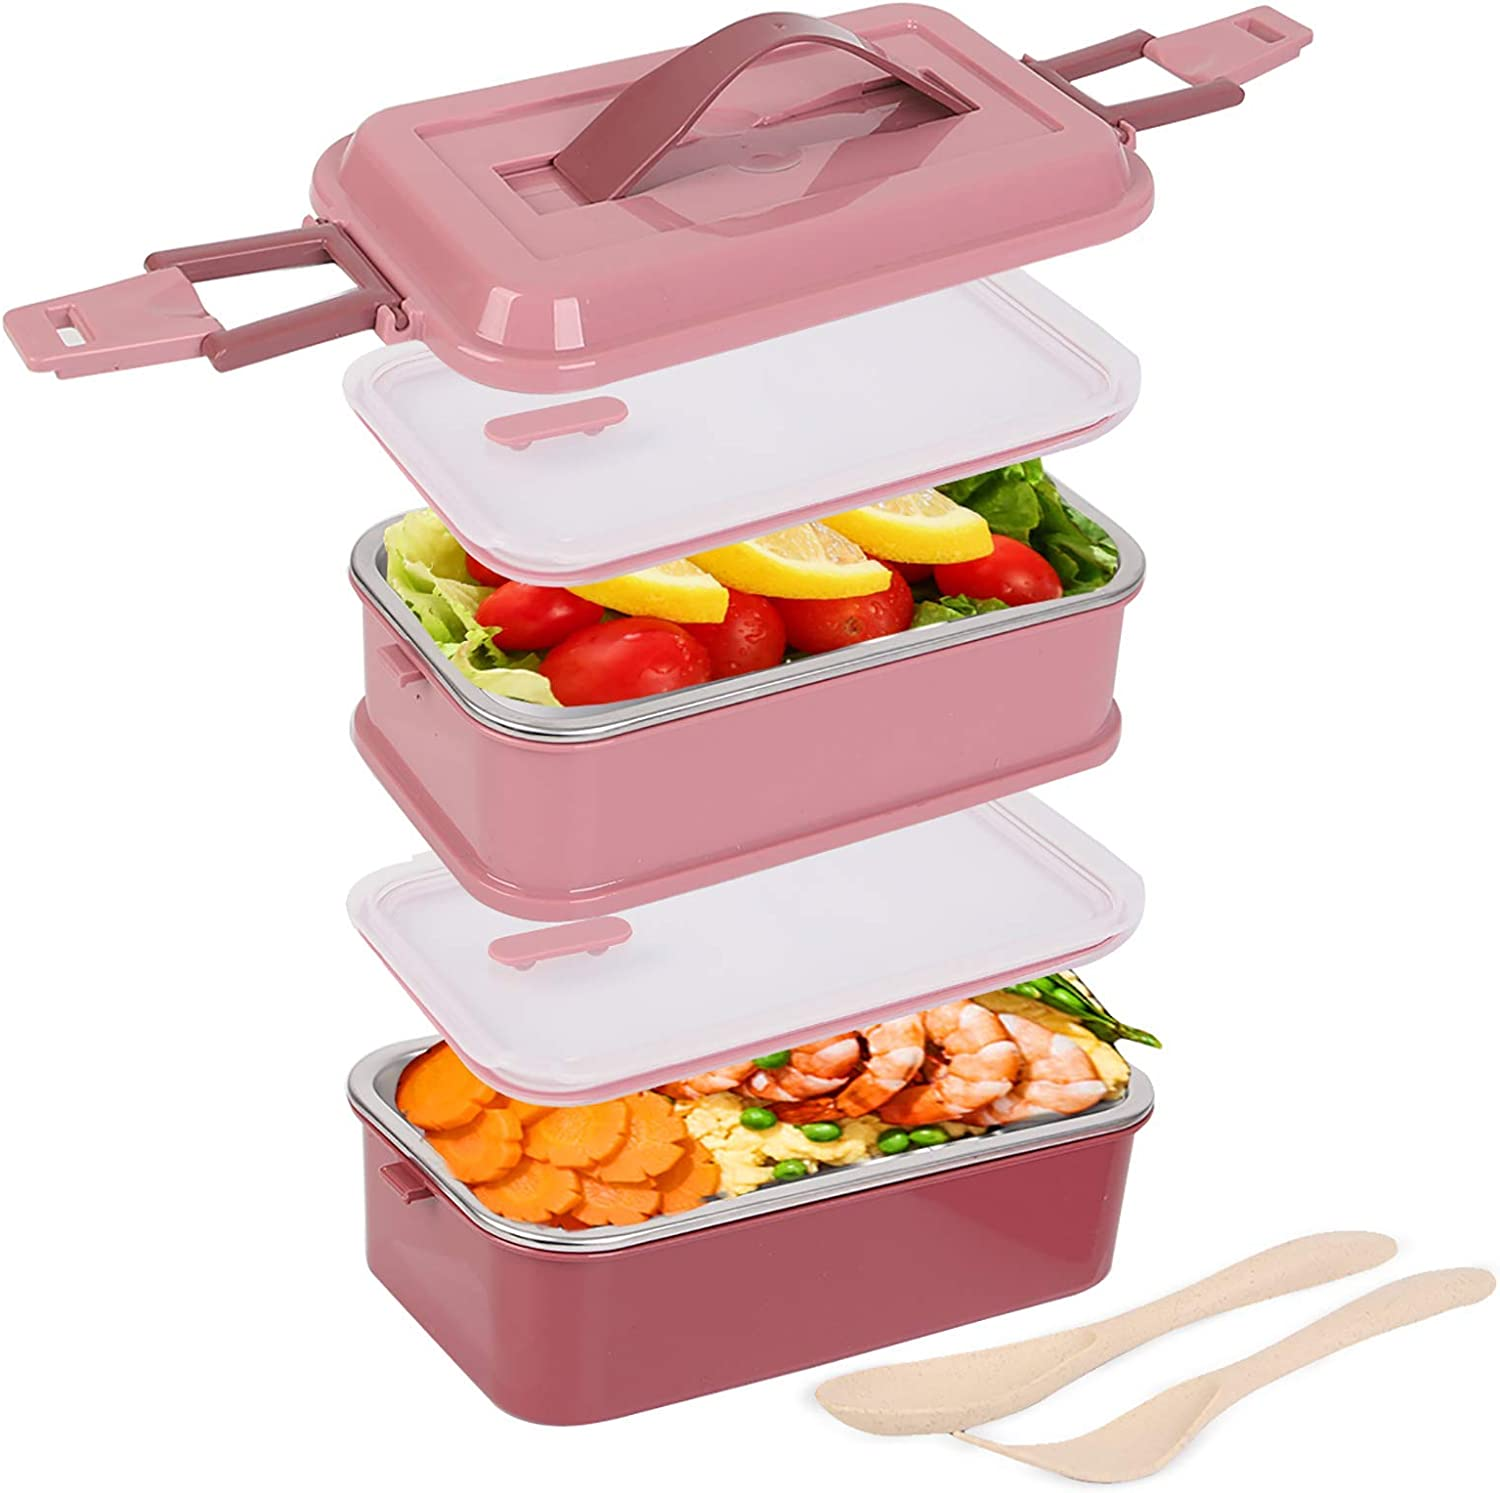 Stainless Steel Lunch Bento Box Food Storage 2 Square Containers for Women Men, BPA Free Leak Proof with Fork and Spoon for Picnic, Office (Pink)